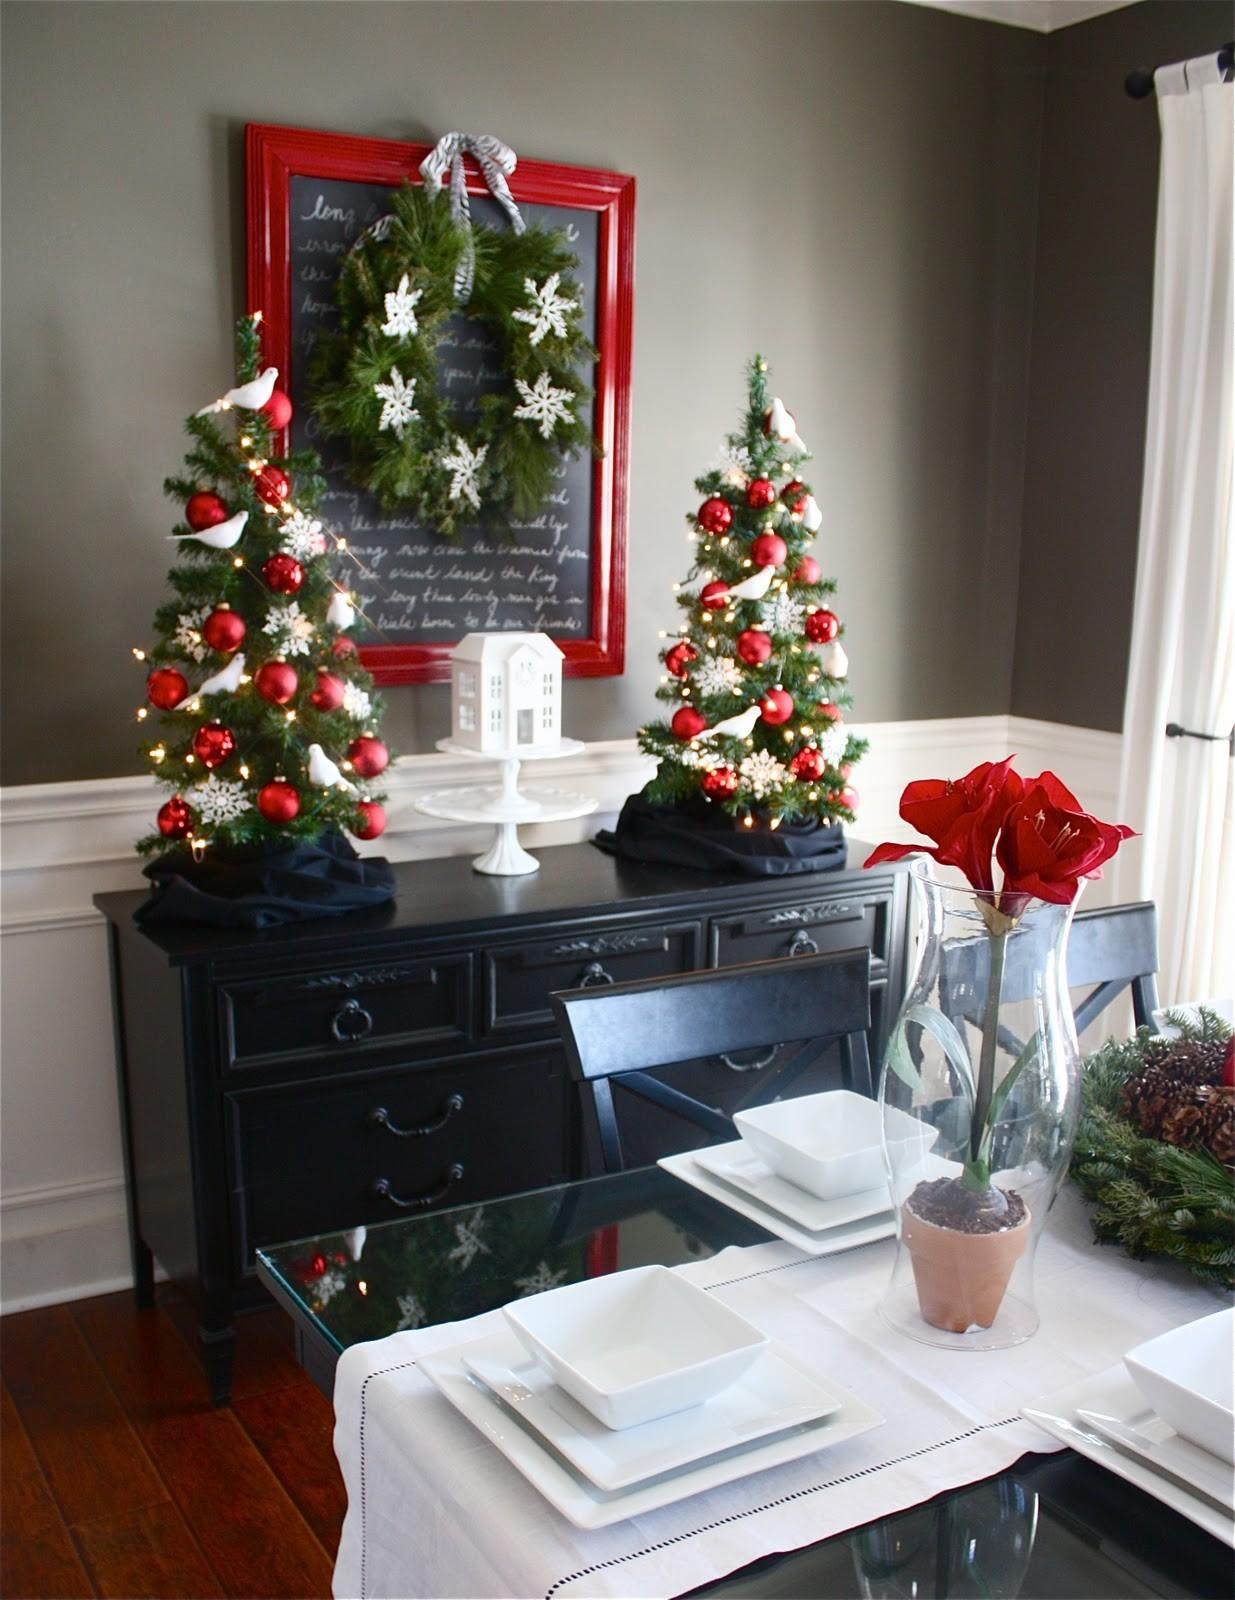 18+ Custom Christmas Dining Room Ideas That Will Provide You Real